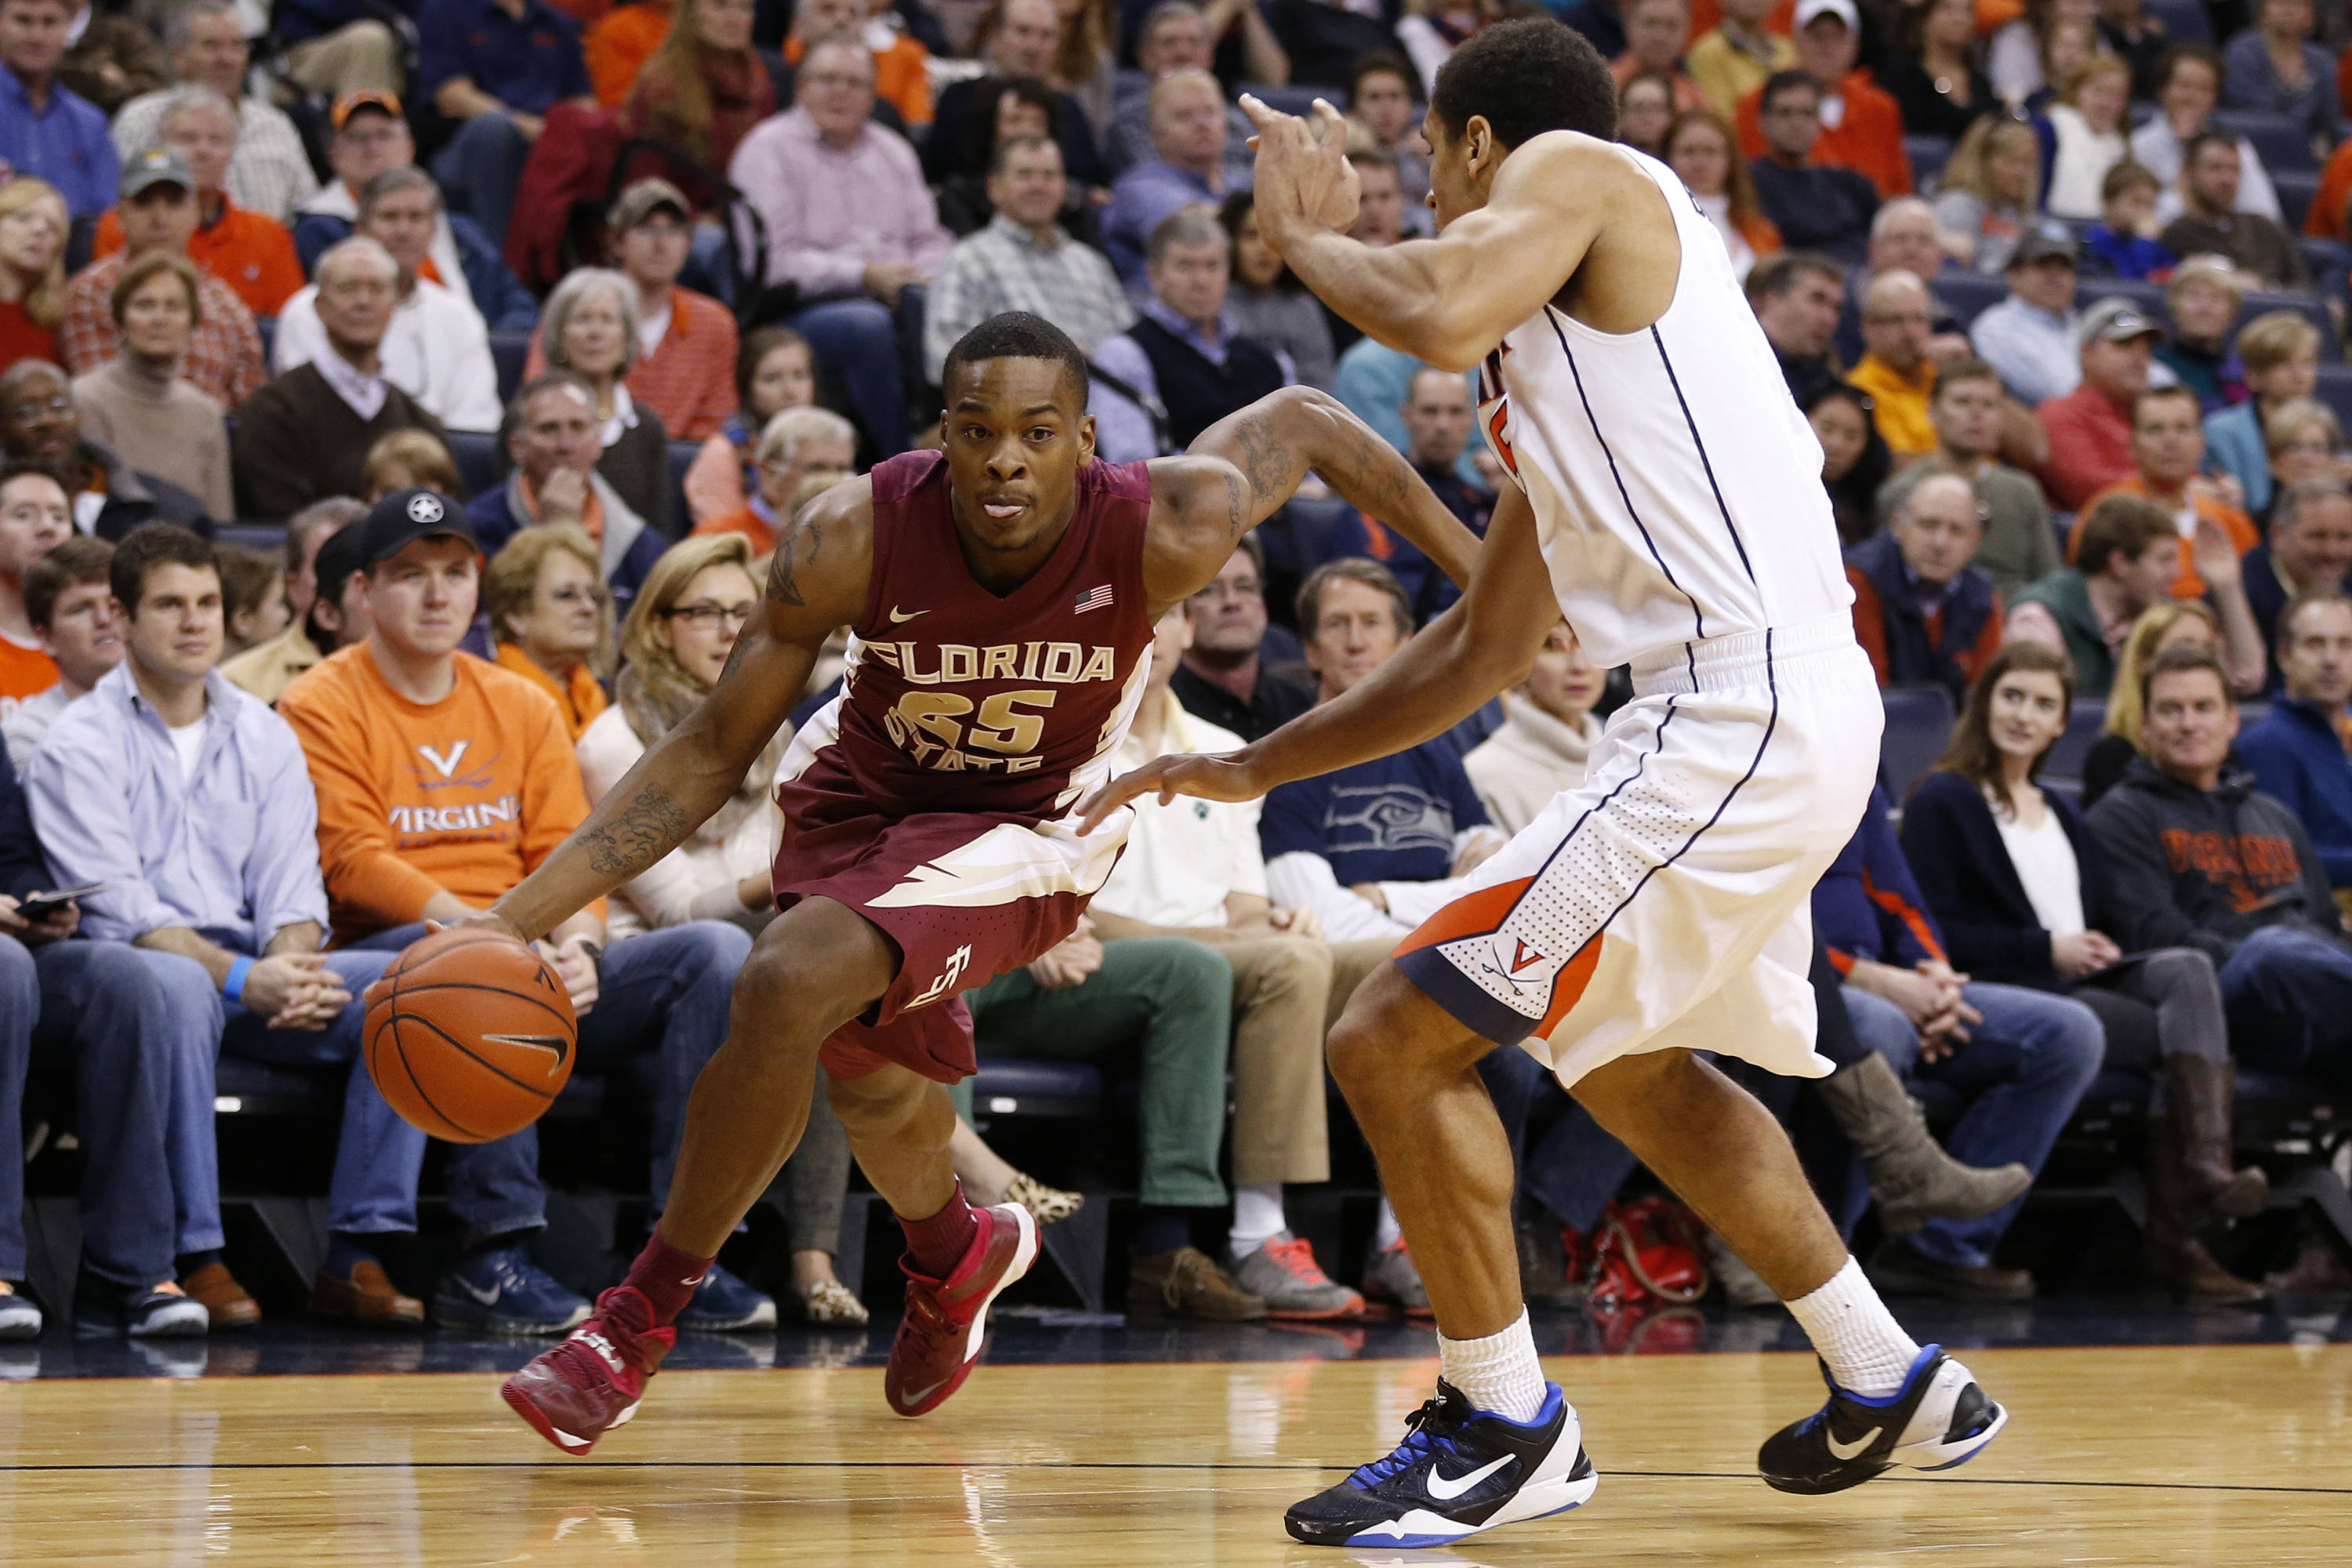 Jan 18, 2014; Charlottesville, VA, USA; Florida State Seminoles guard Aaron Thomas (25) dribbles the ball around Virginia Cavaliers guard Malcolm Brogdon (15) in the first half at John Paul Jones Arena. Mandatory Credit: Geoff Burke-USA TODAY Sports